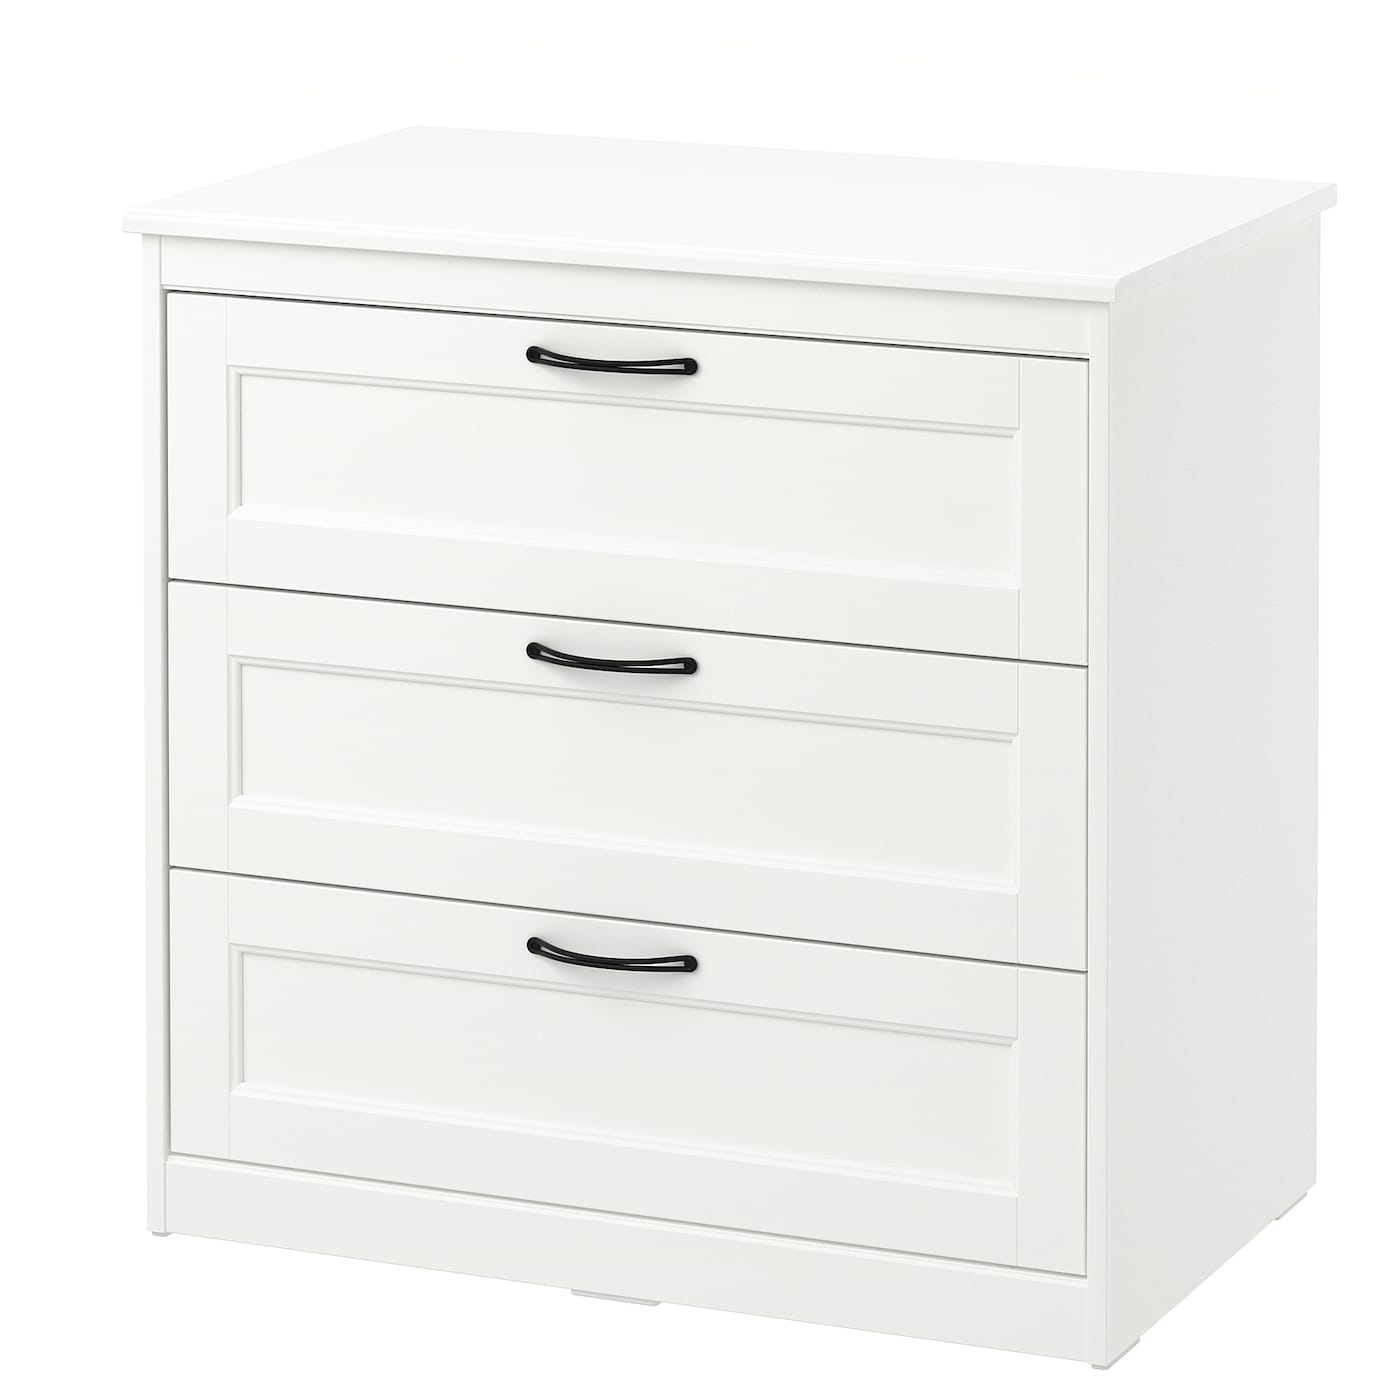 """Shop SONGESAND 3-drawer chest, white, 32 1/4x31 7/8"""" - IKEA from Ikea on Openhaus"""